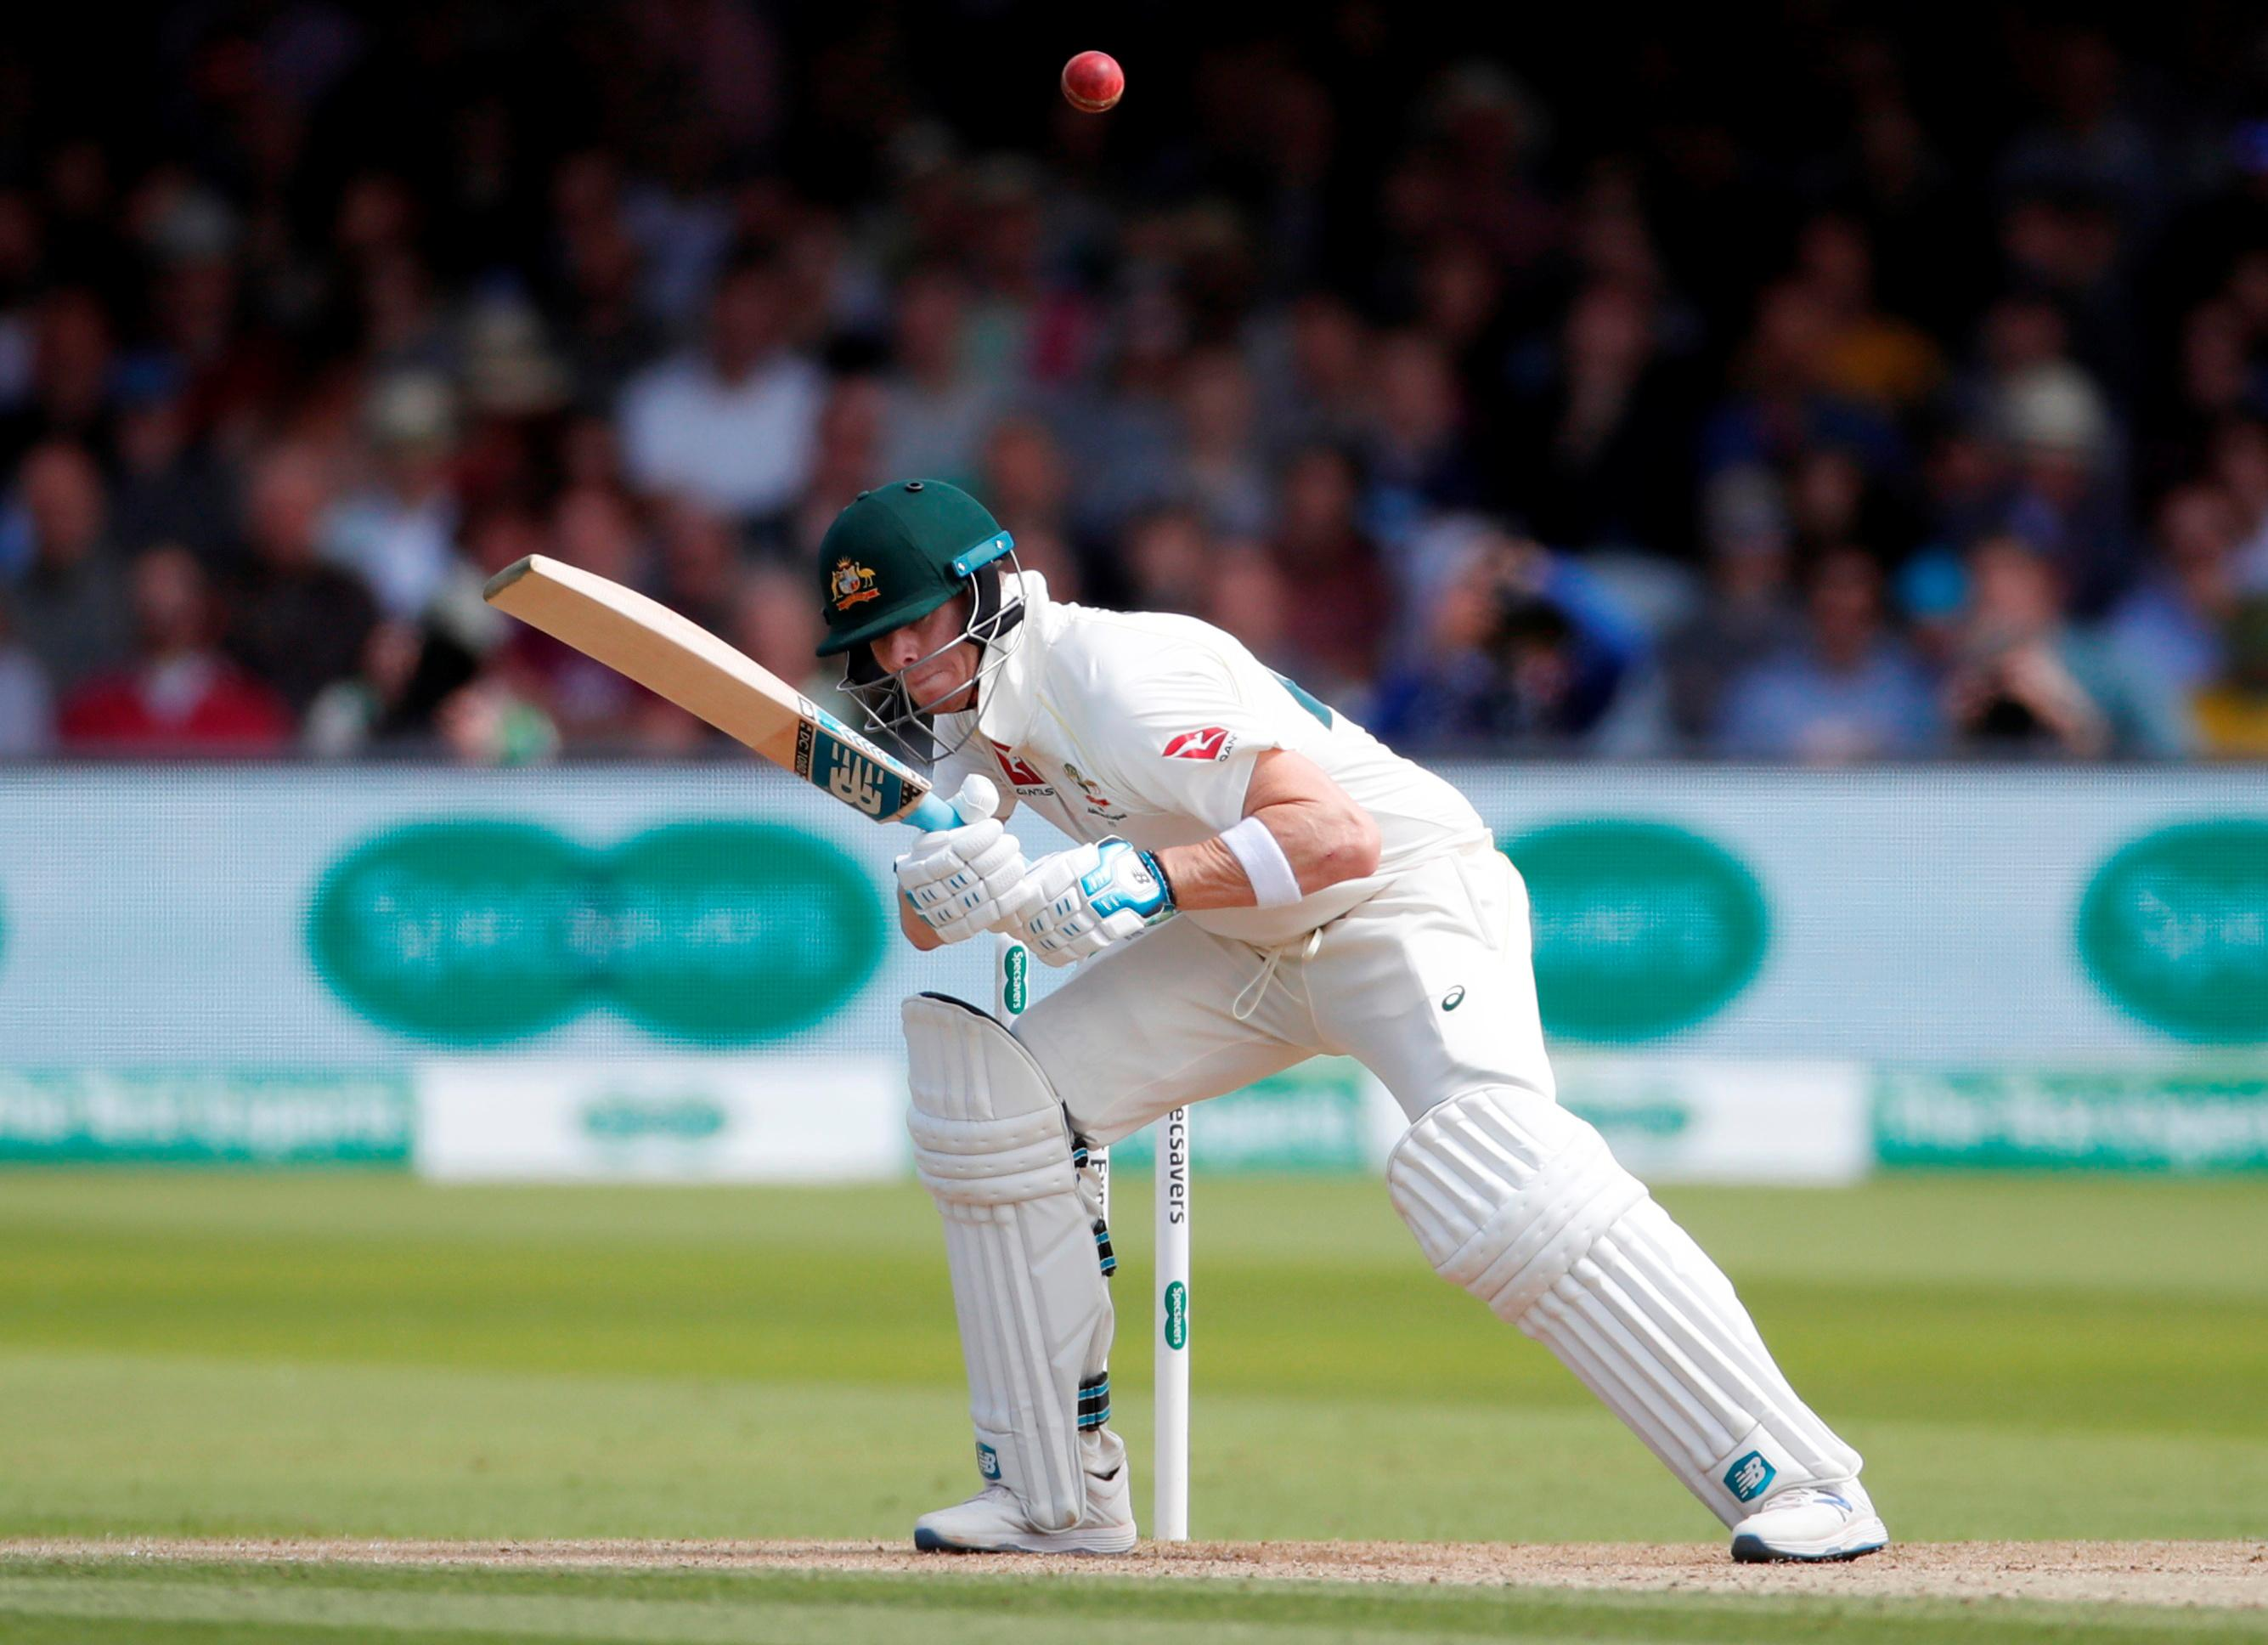 Immovable Smith frustrates England again